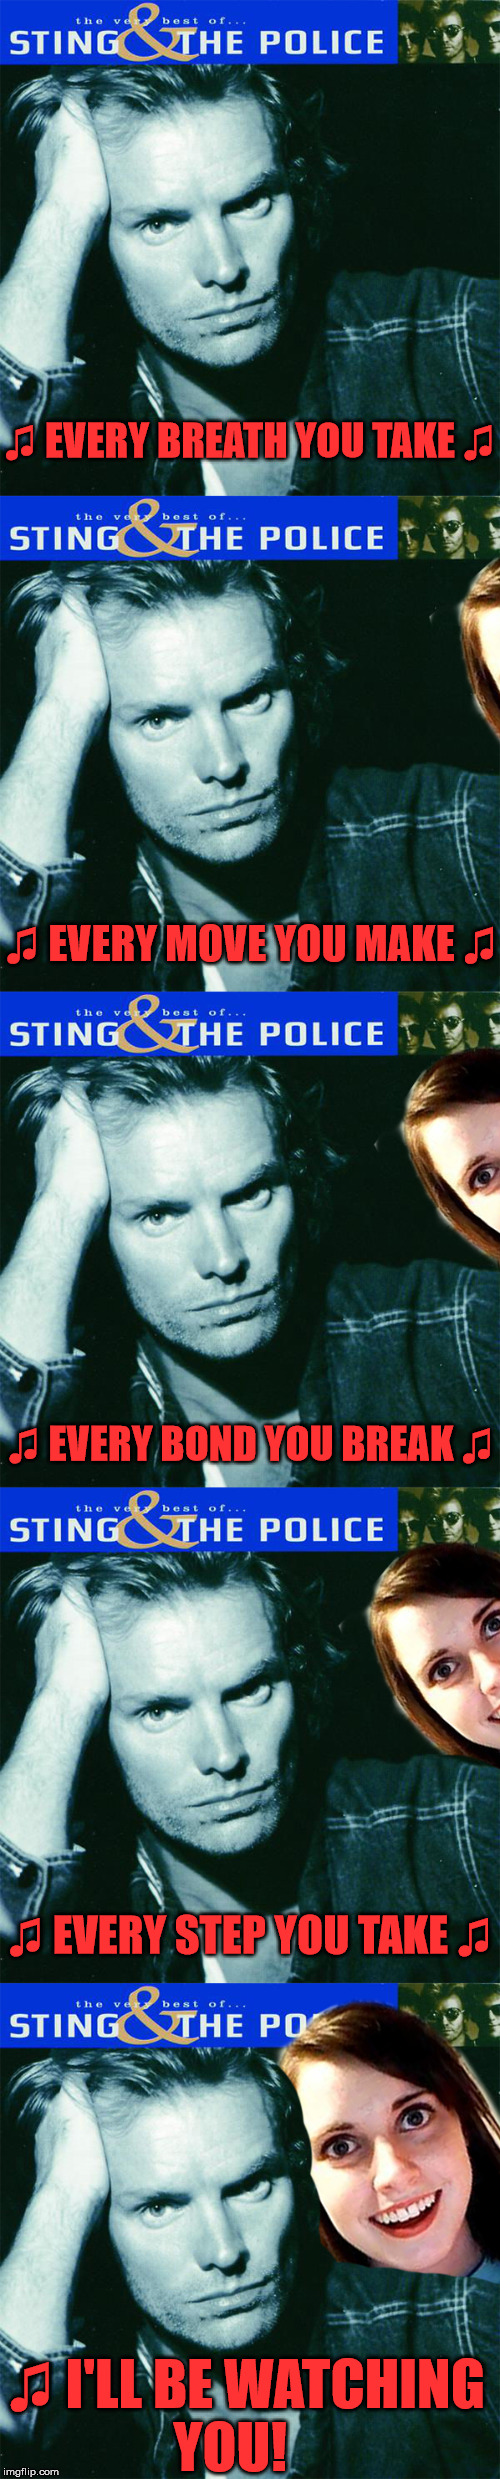 ♫ EVERY BREATH YOU TAKE ♫ ♫ I'LL BE WATCHING YOU! ♫ EVERY MOVE YOU MAKE ♫ ♫ EVERY BOND YOU BREAK ♫ ♫ EVERY STEP YOU TAKE ♫ | image tagged in memes,funny,overly attached girlfriend,music,first world problems,relationships | made w/ Imgflip meme maker